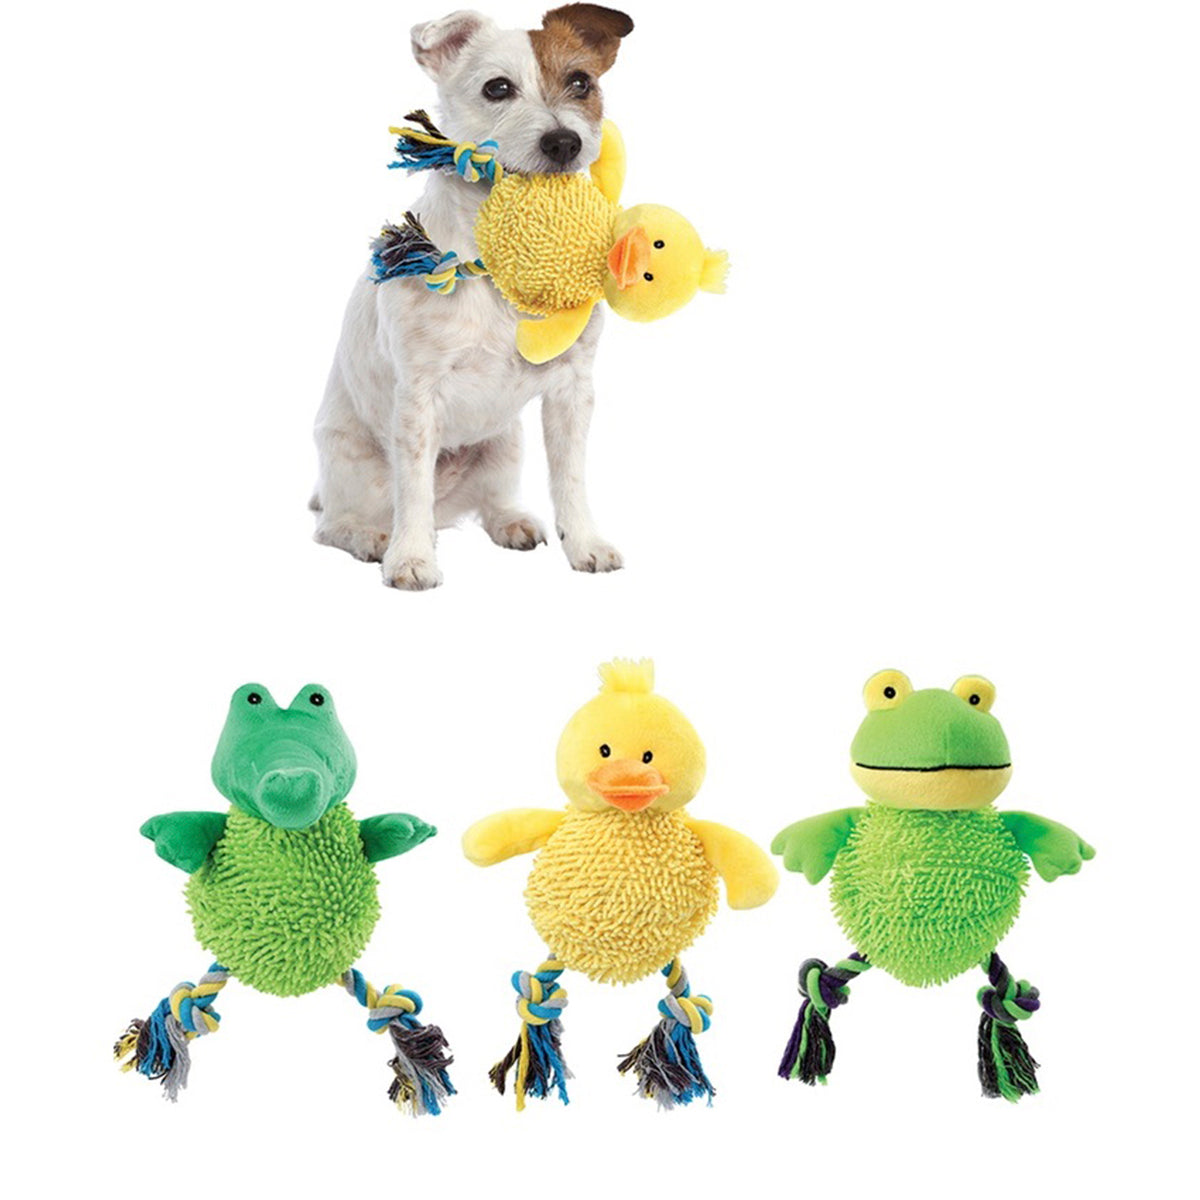 ETNA - Laughing Dog Toys set of 3 - (5009) - Main